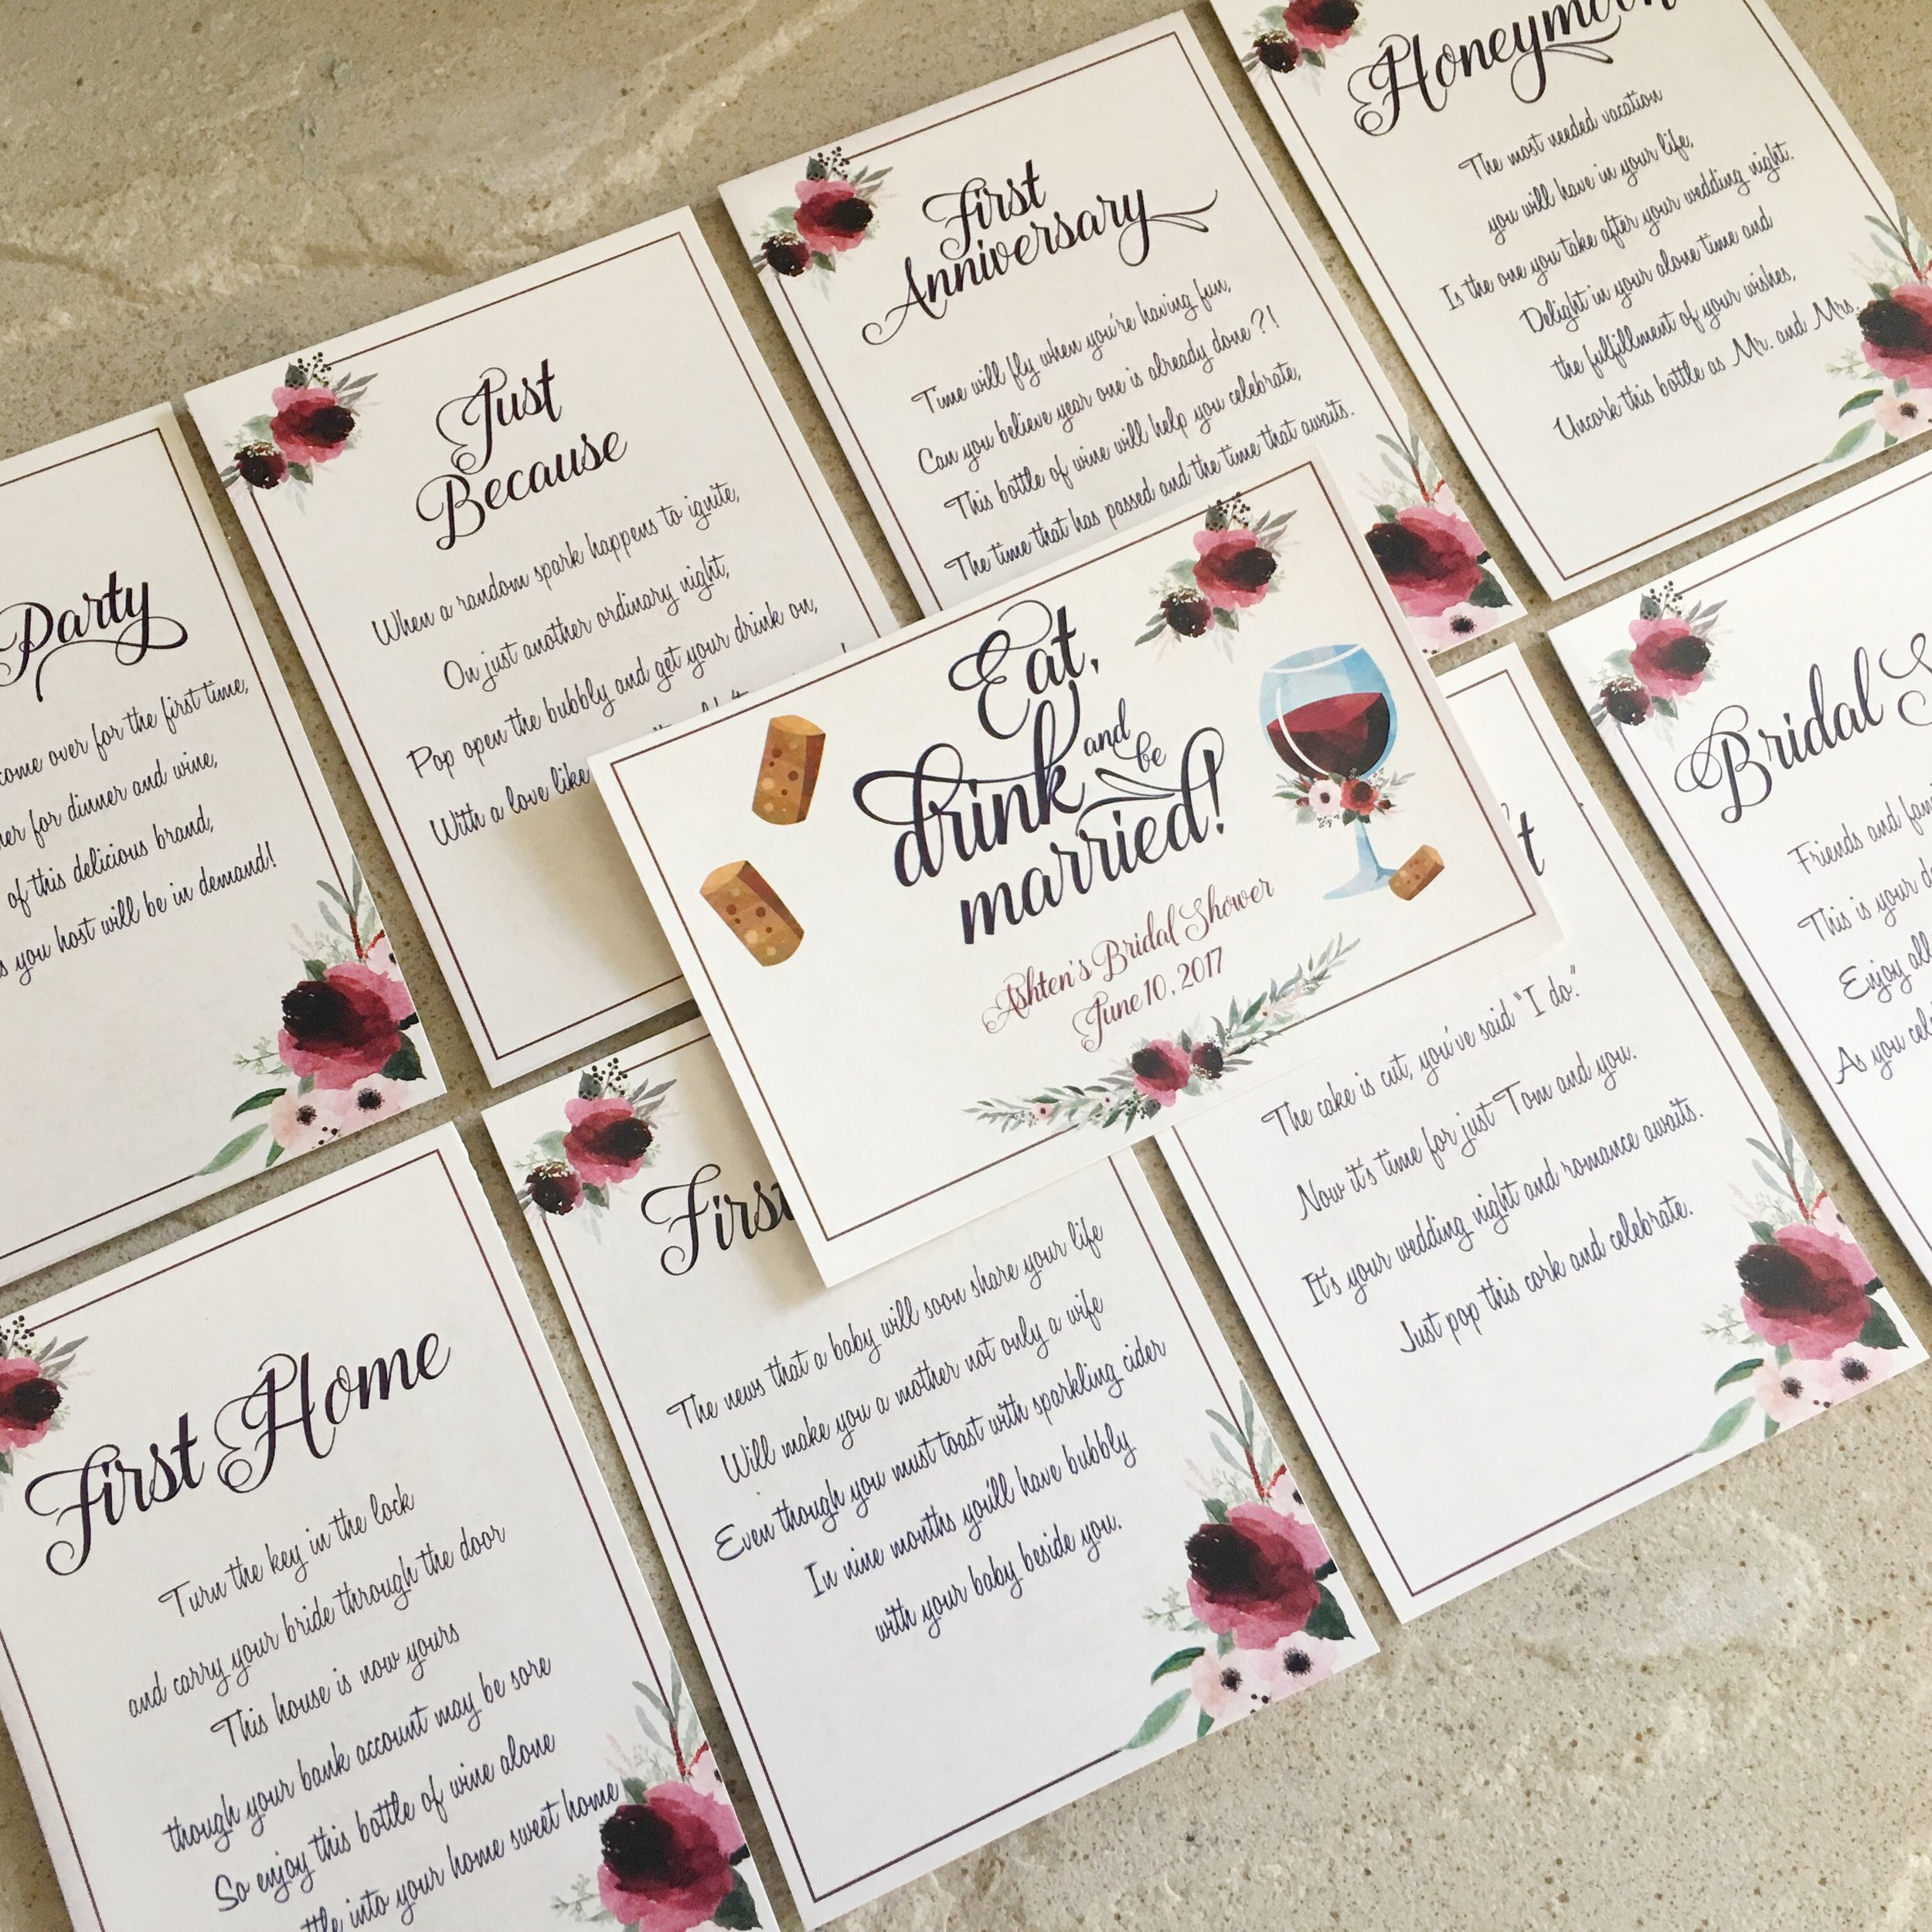 Central PA, York PA, JesSmith Designs, custom, wedding, invitations, bridal, announcements, save the date, birth, baby, motherhood, hanover, calligraphy, handlettering-06-06 13.34.41.jpg